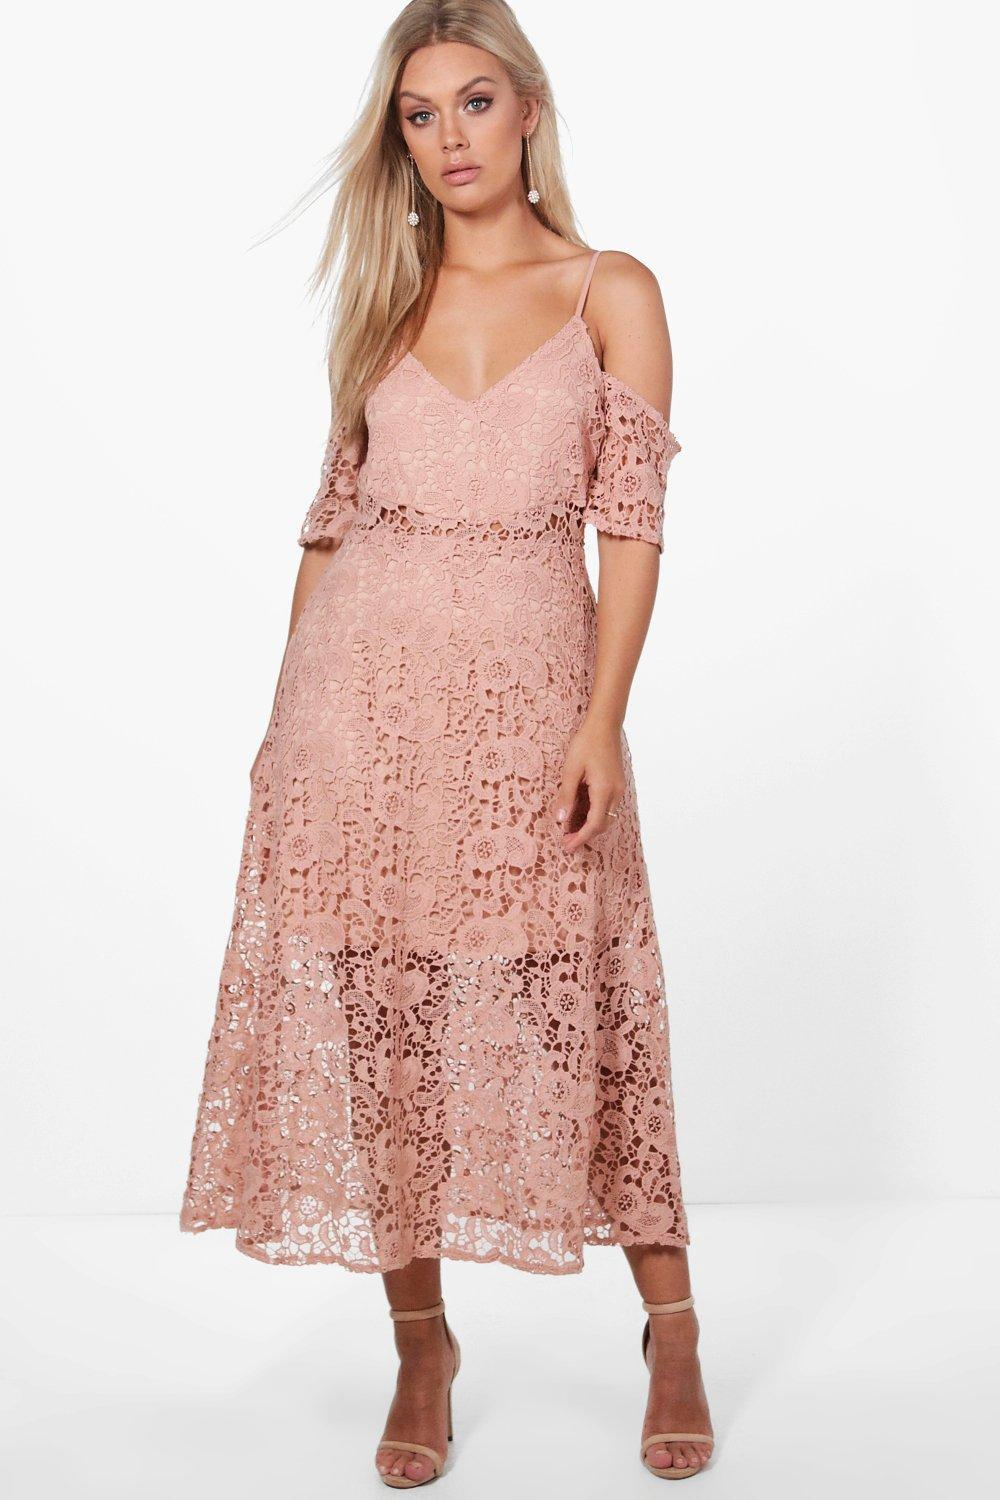 Lyst - Boohoo Plus Crochet Lace Premium Skater Dress in Pink aac84c905